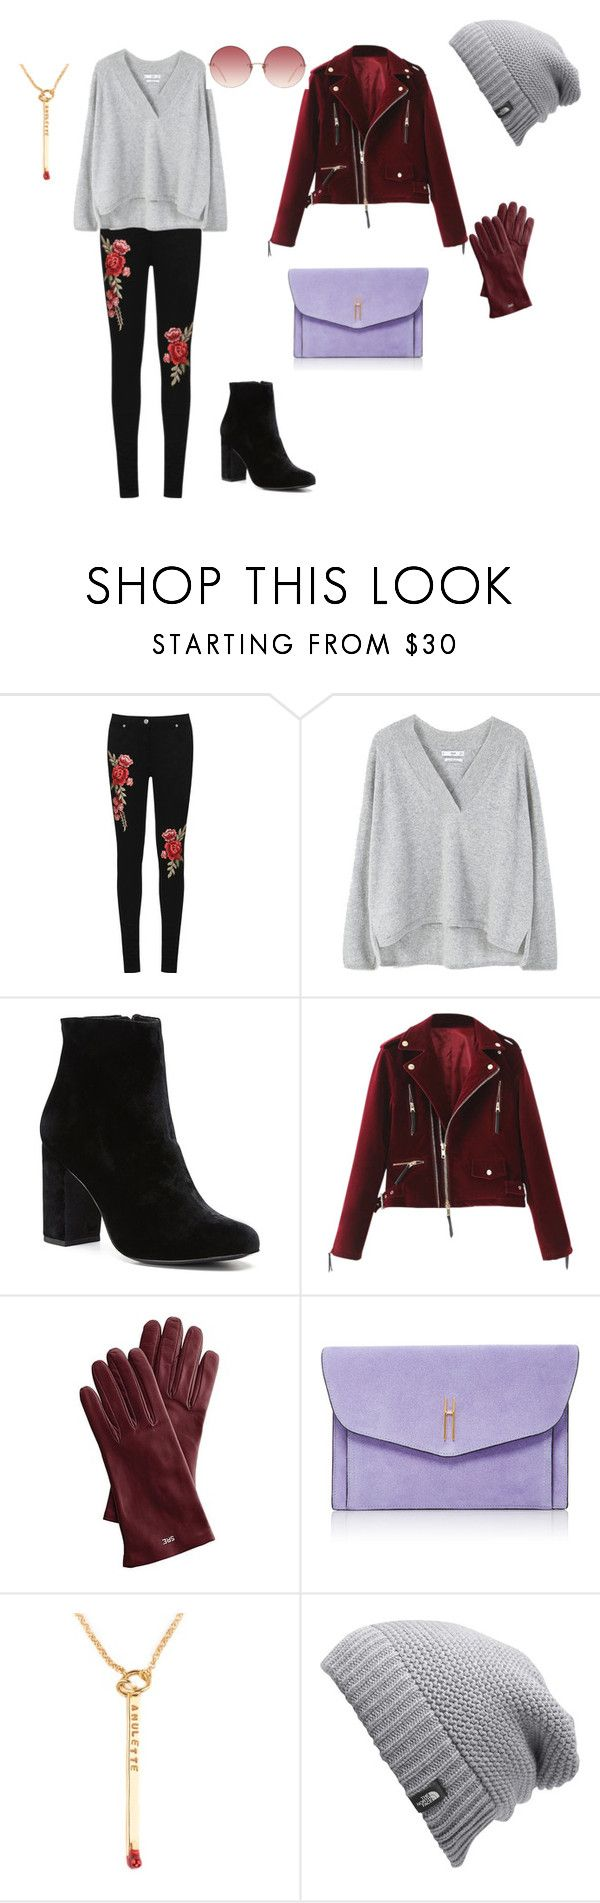 """Весна пришла-и мы идем красивые!!!  п"" by yana-ardysheva on Polyvore featuring мода, WearAll, MANGO, Witchery, Mark & Graham, Hayward, The North Face и Linda Farrow"